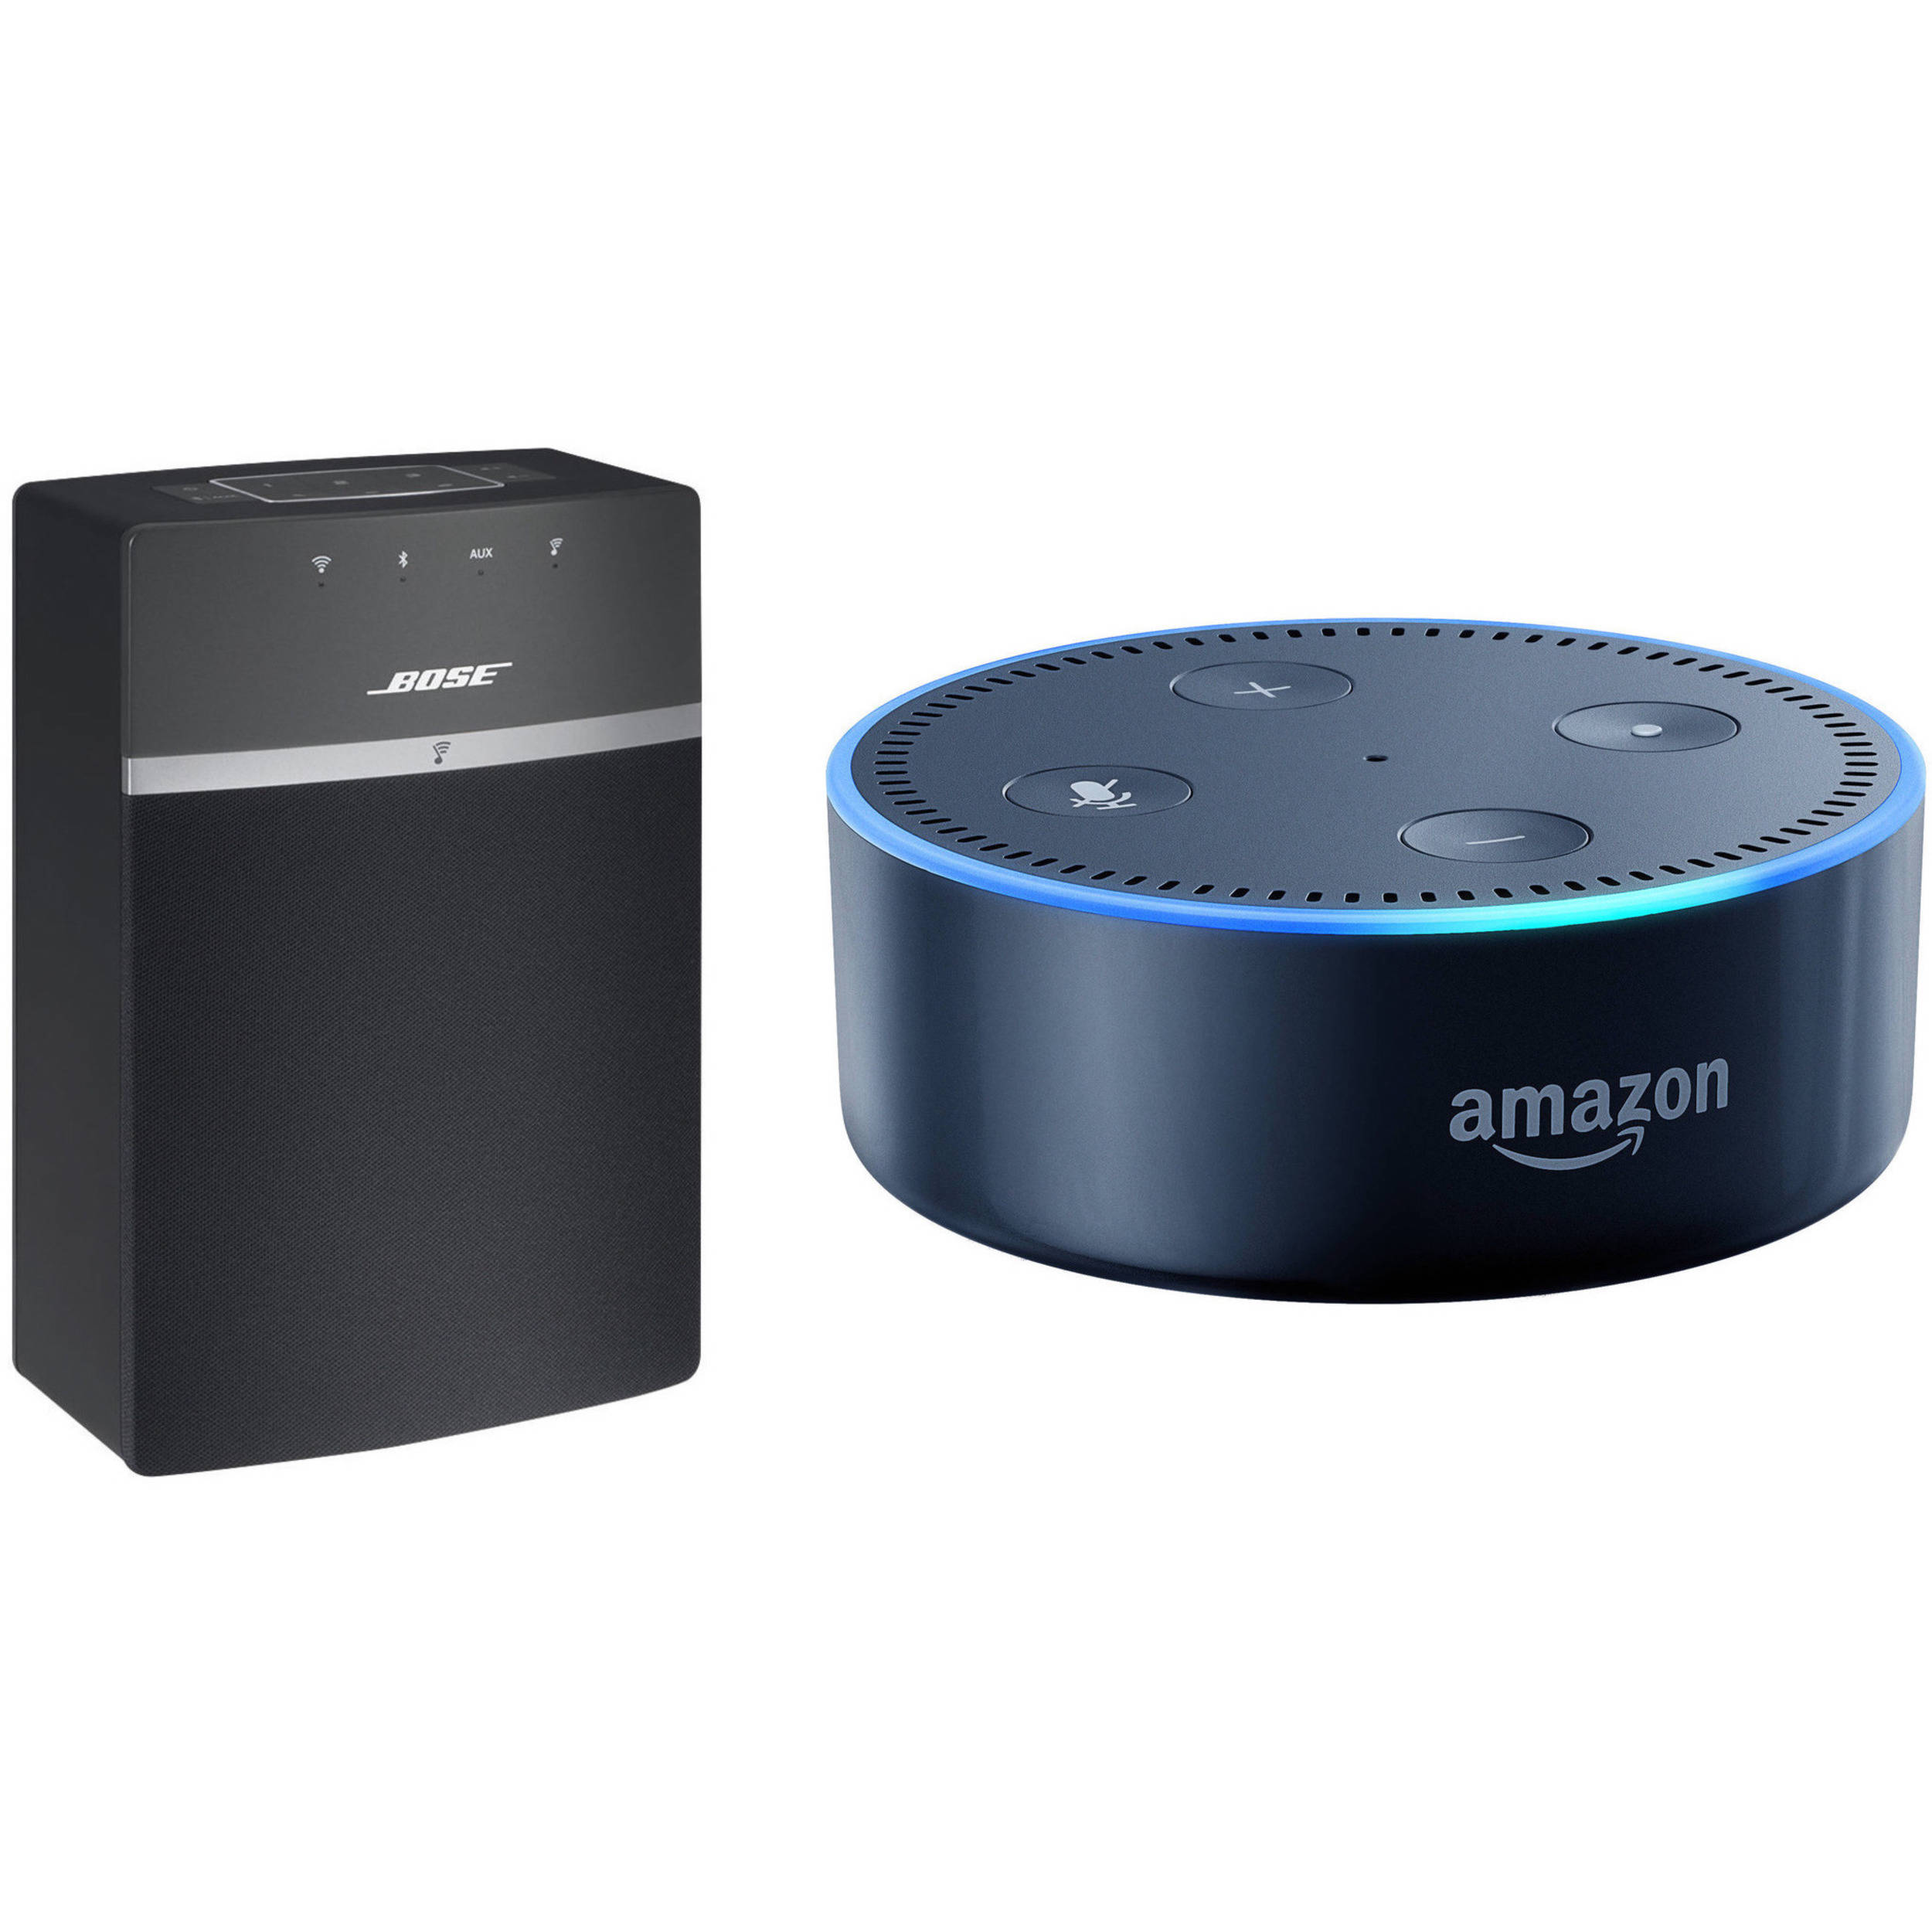 d7bb5a98508f69 Bose SoundTouch 10 Wireless Music System and Amazon Echo Dot